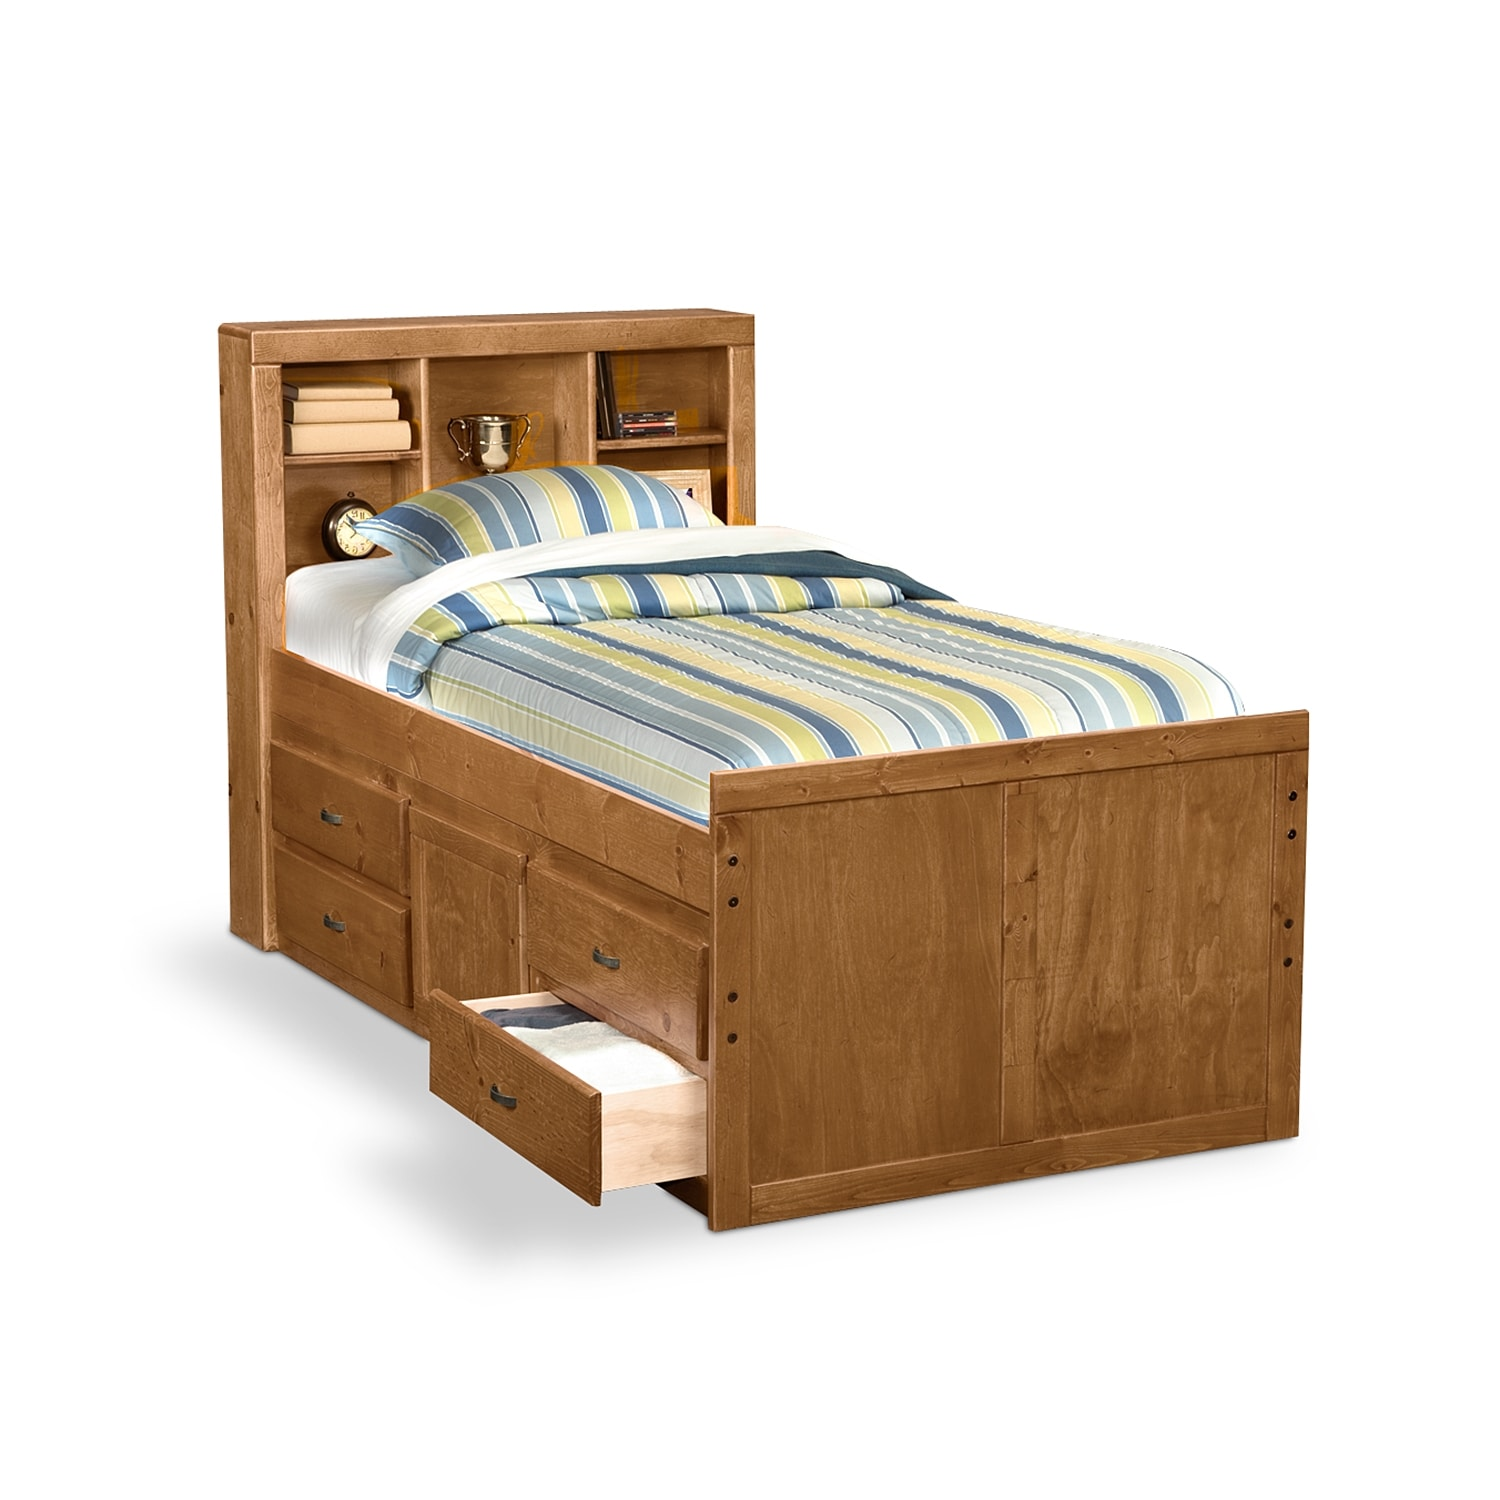 Coming soon for Twin bed with storage